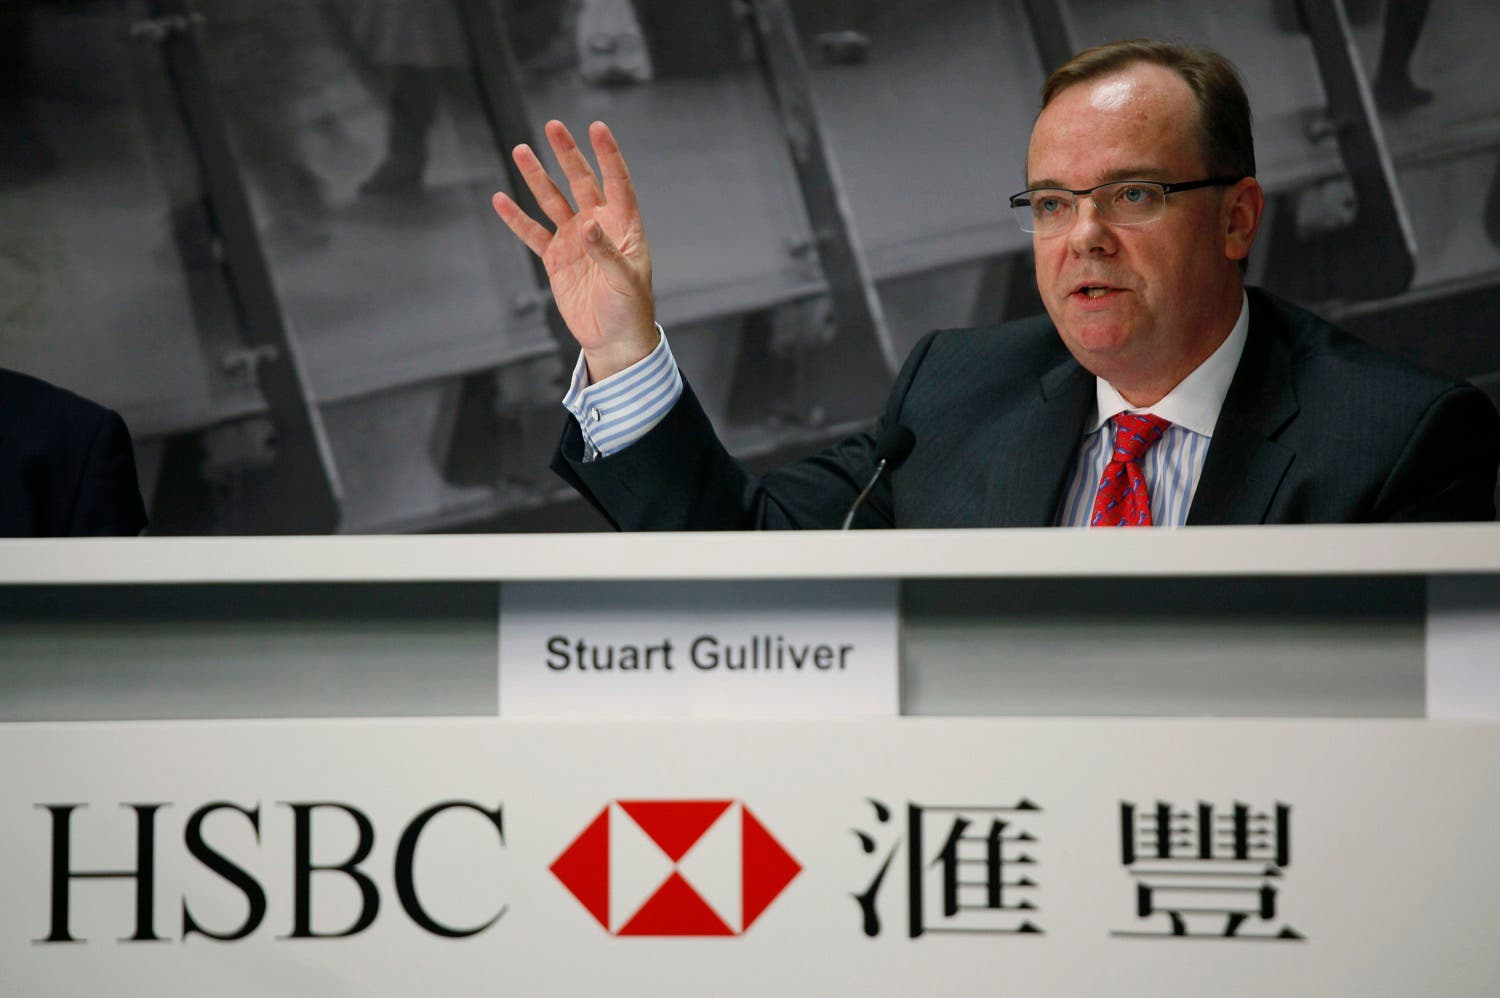 HSBC's Chief Executive Stuart Gulliver announced the bank's appointment on the deal at a shareholders' meeting in Hong Kong. (AP)